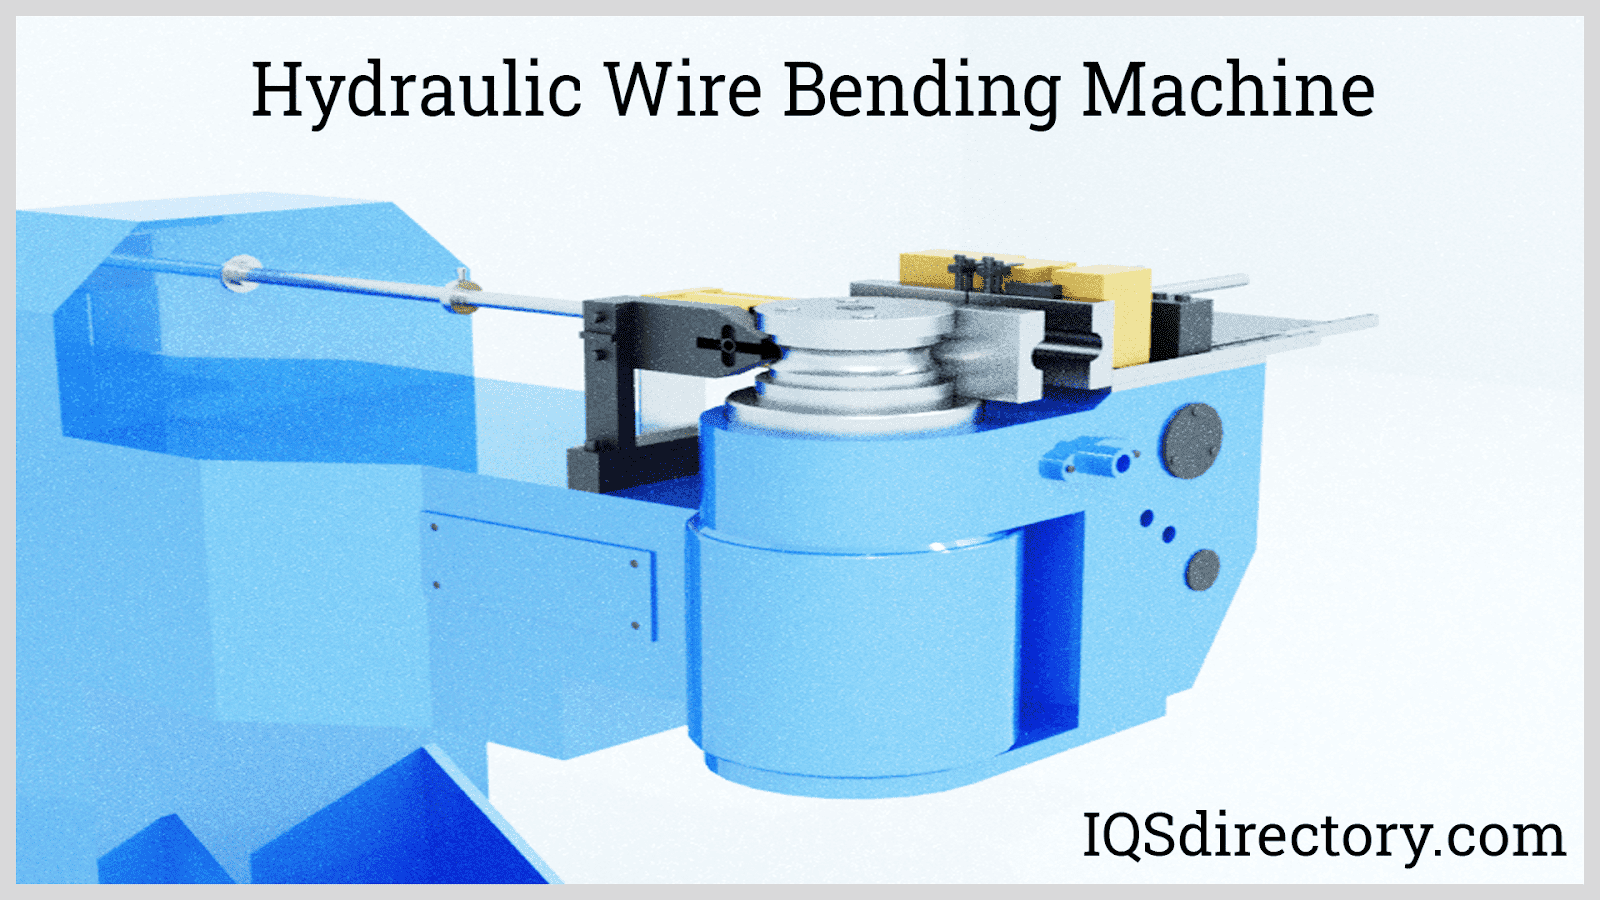 Hydraulic Wire Bending Machine